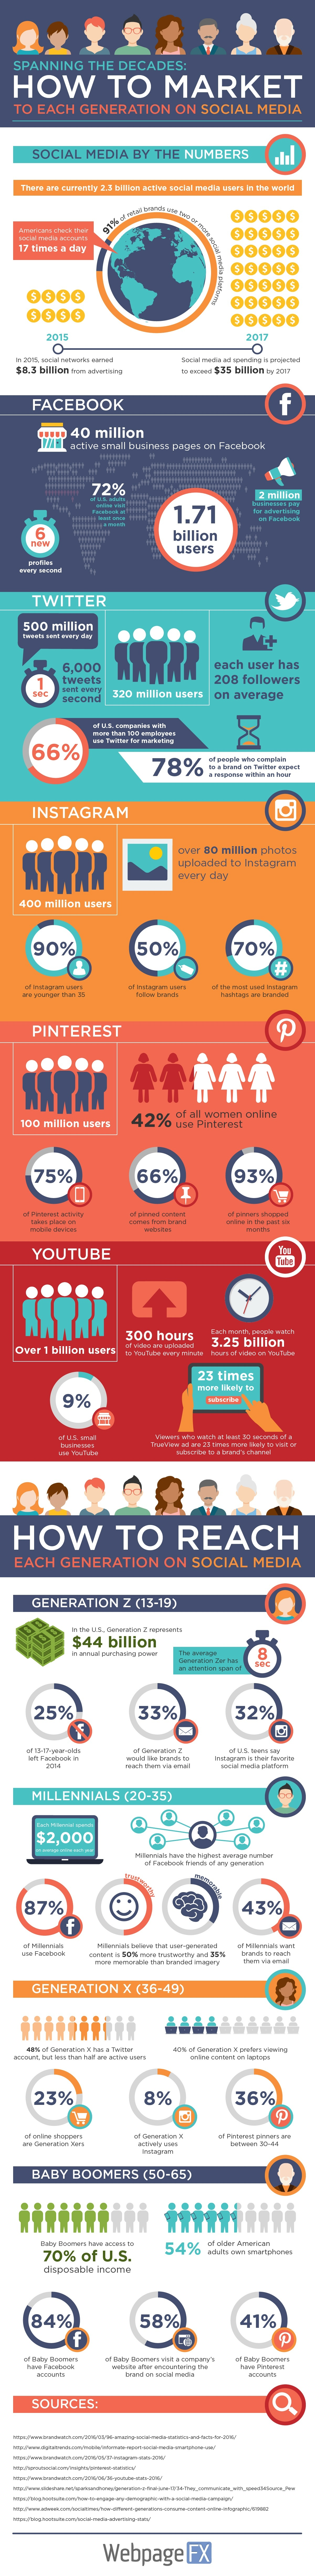 how-to-market-to-each-generation-social-media-infographic.jpeg